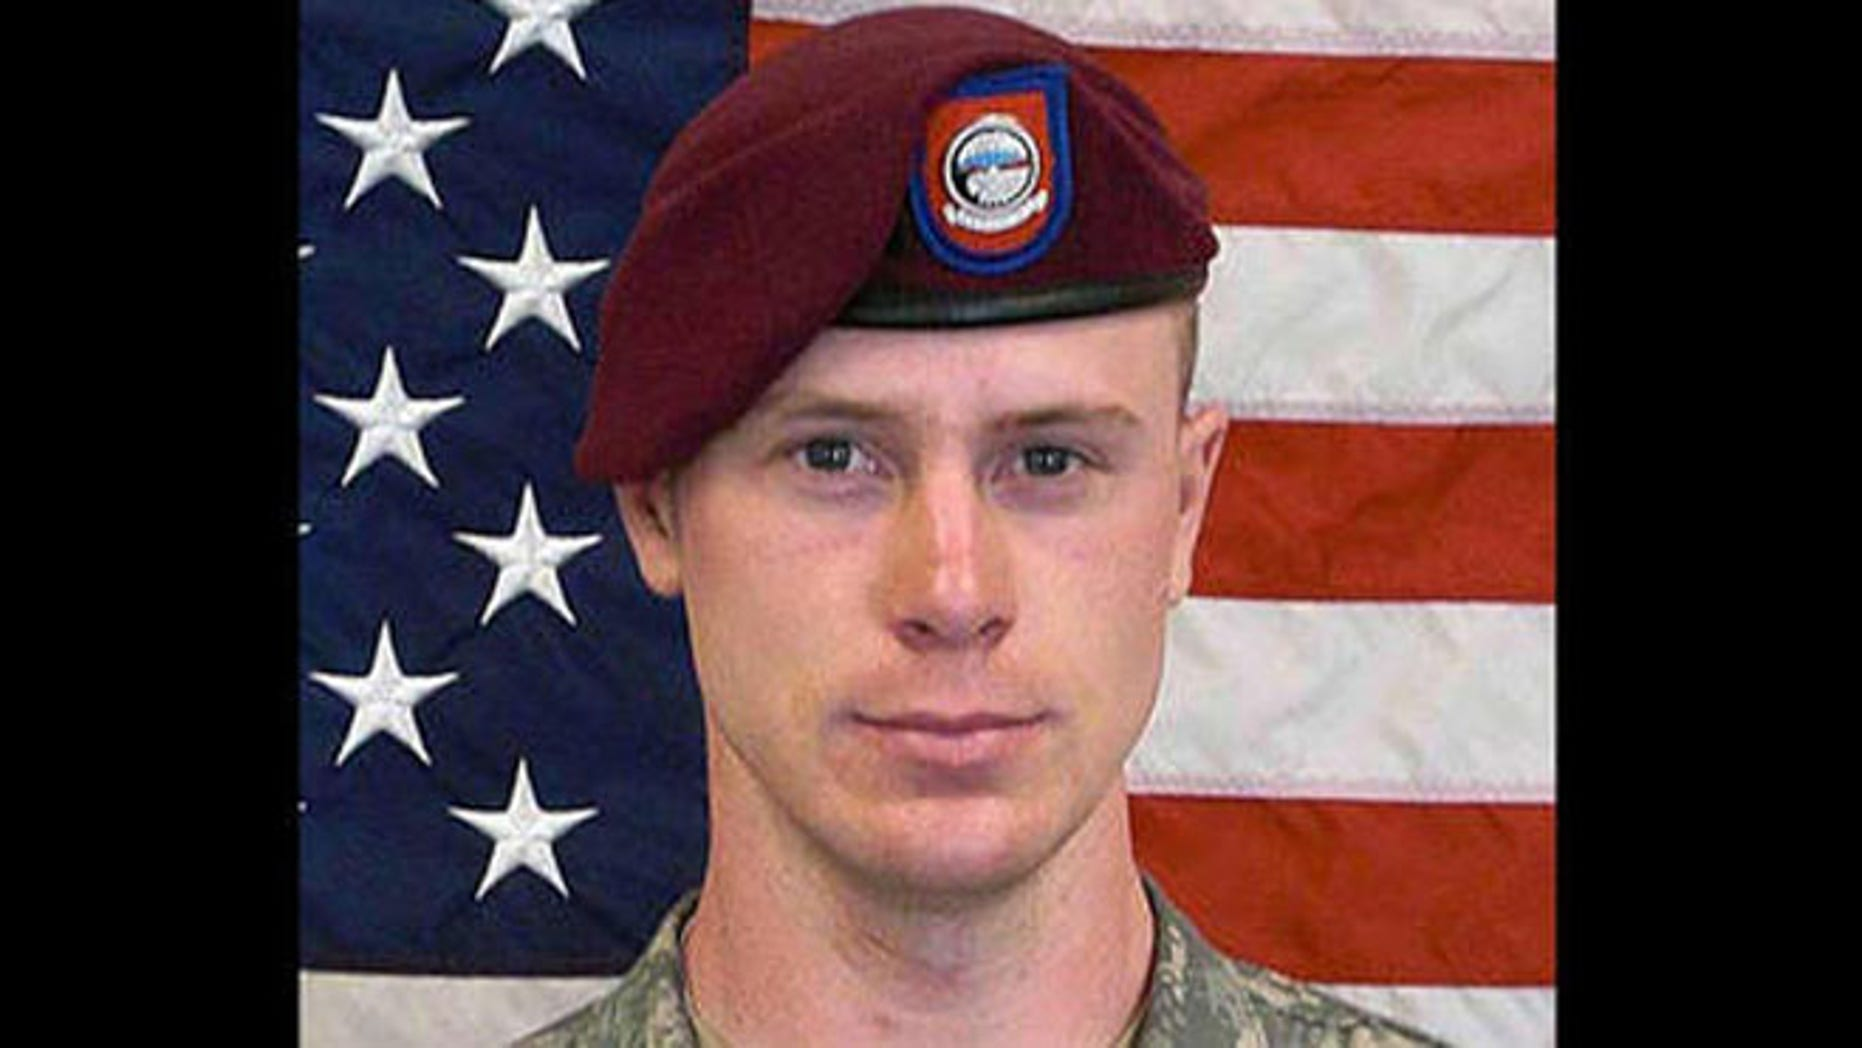 An undated photo of U.S. Army Sgt. Bowe Bergdahl, who was captured in Afghanistan in 2009.